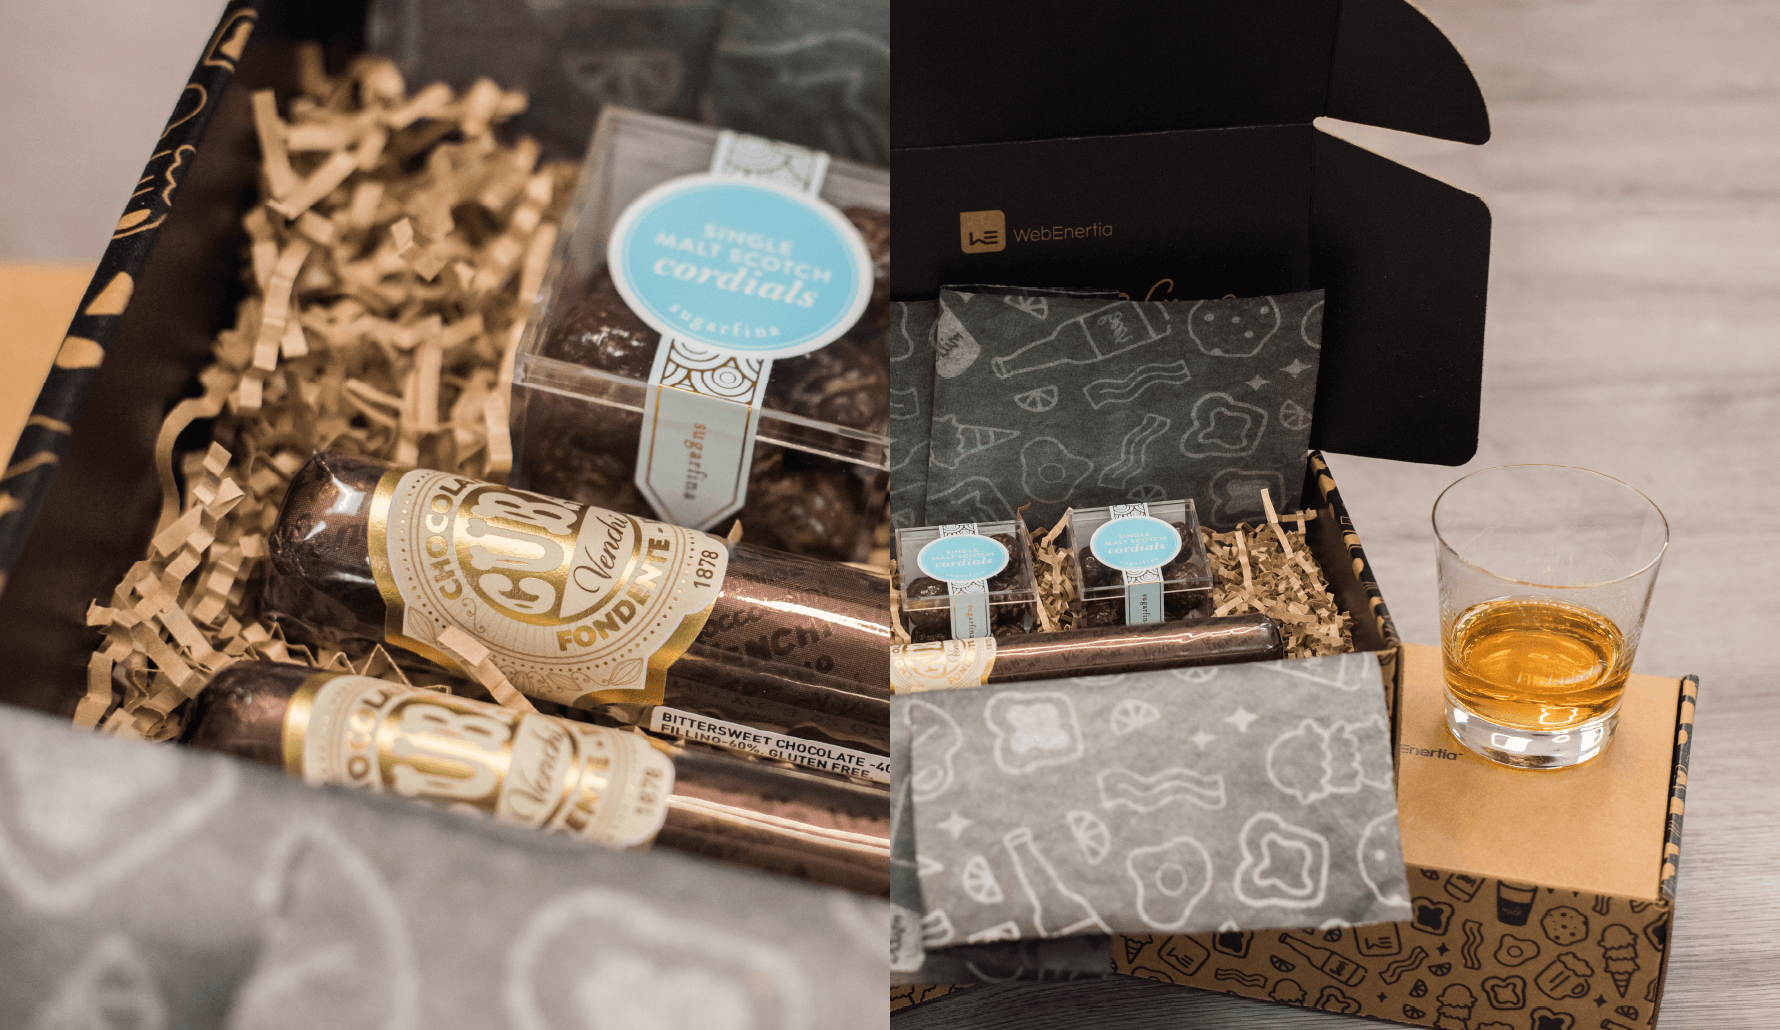 WebEnertia Together We're Better Sugarfina sweets and chocolate cigars